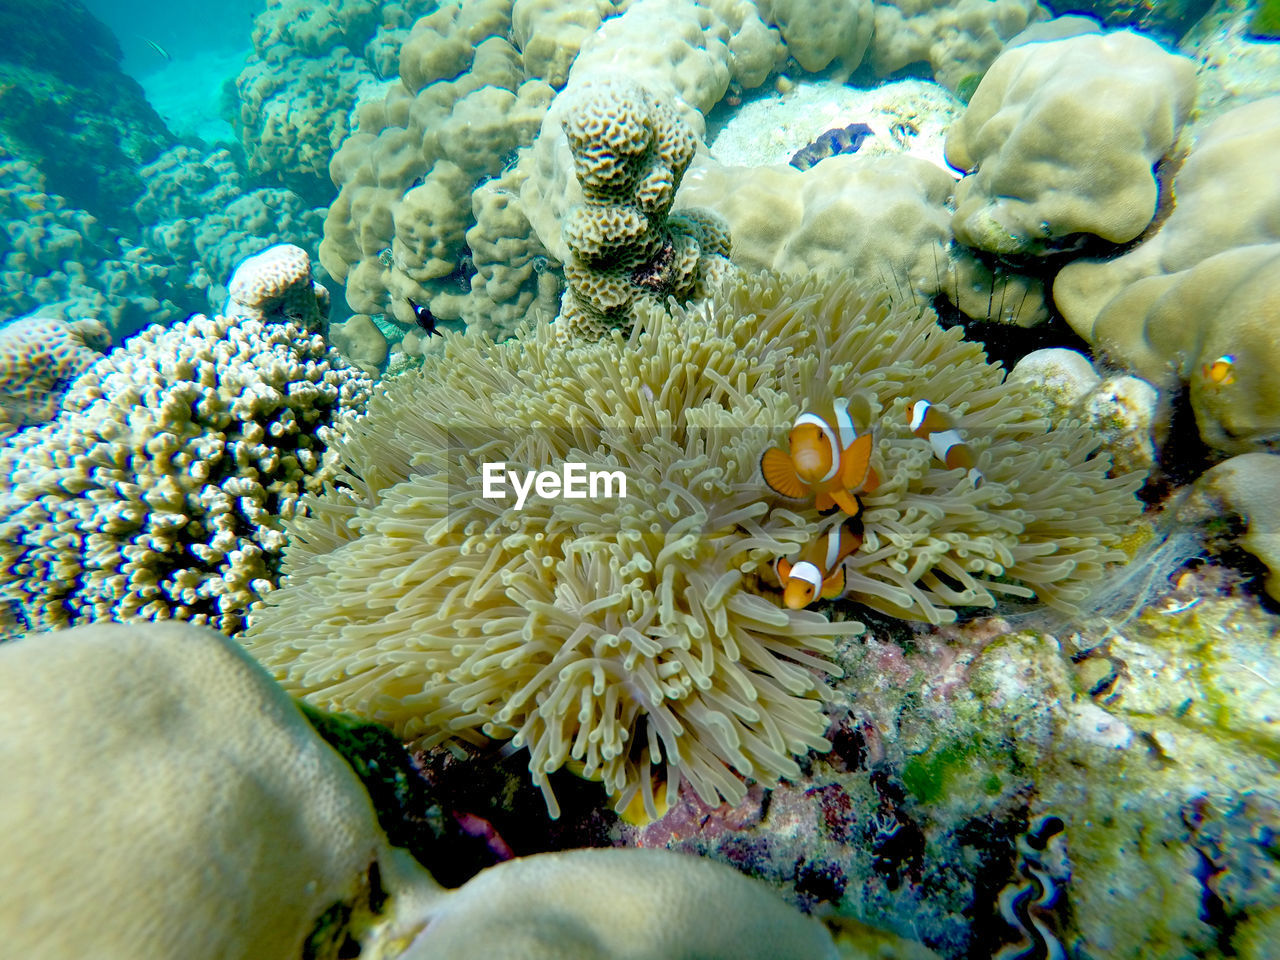 underwater, sea, undersea, sea life, animals in the wild, animal wildlife, water, invertebrate, coral, marine, animal themes, animal, beauty in nature, nature, sea anemone, group of animals, no people, reef, symbiotic relationship, clown fish, ecosystem